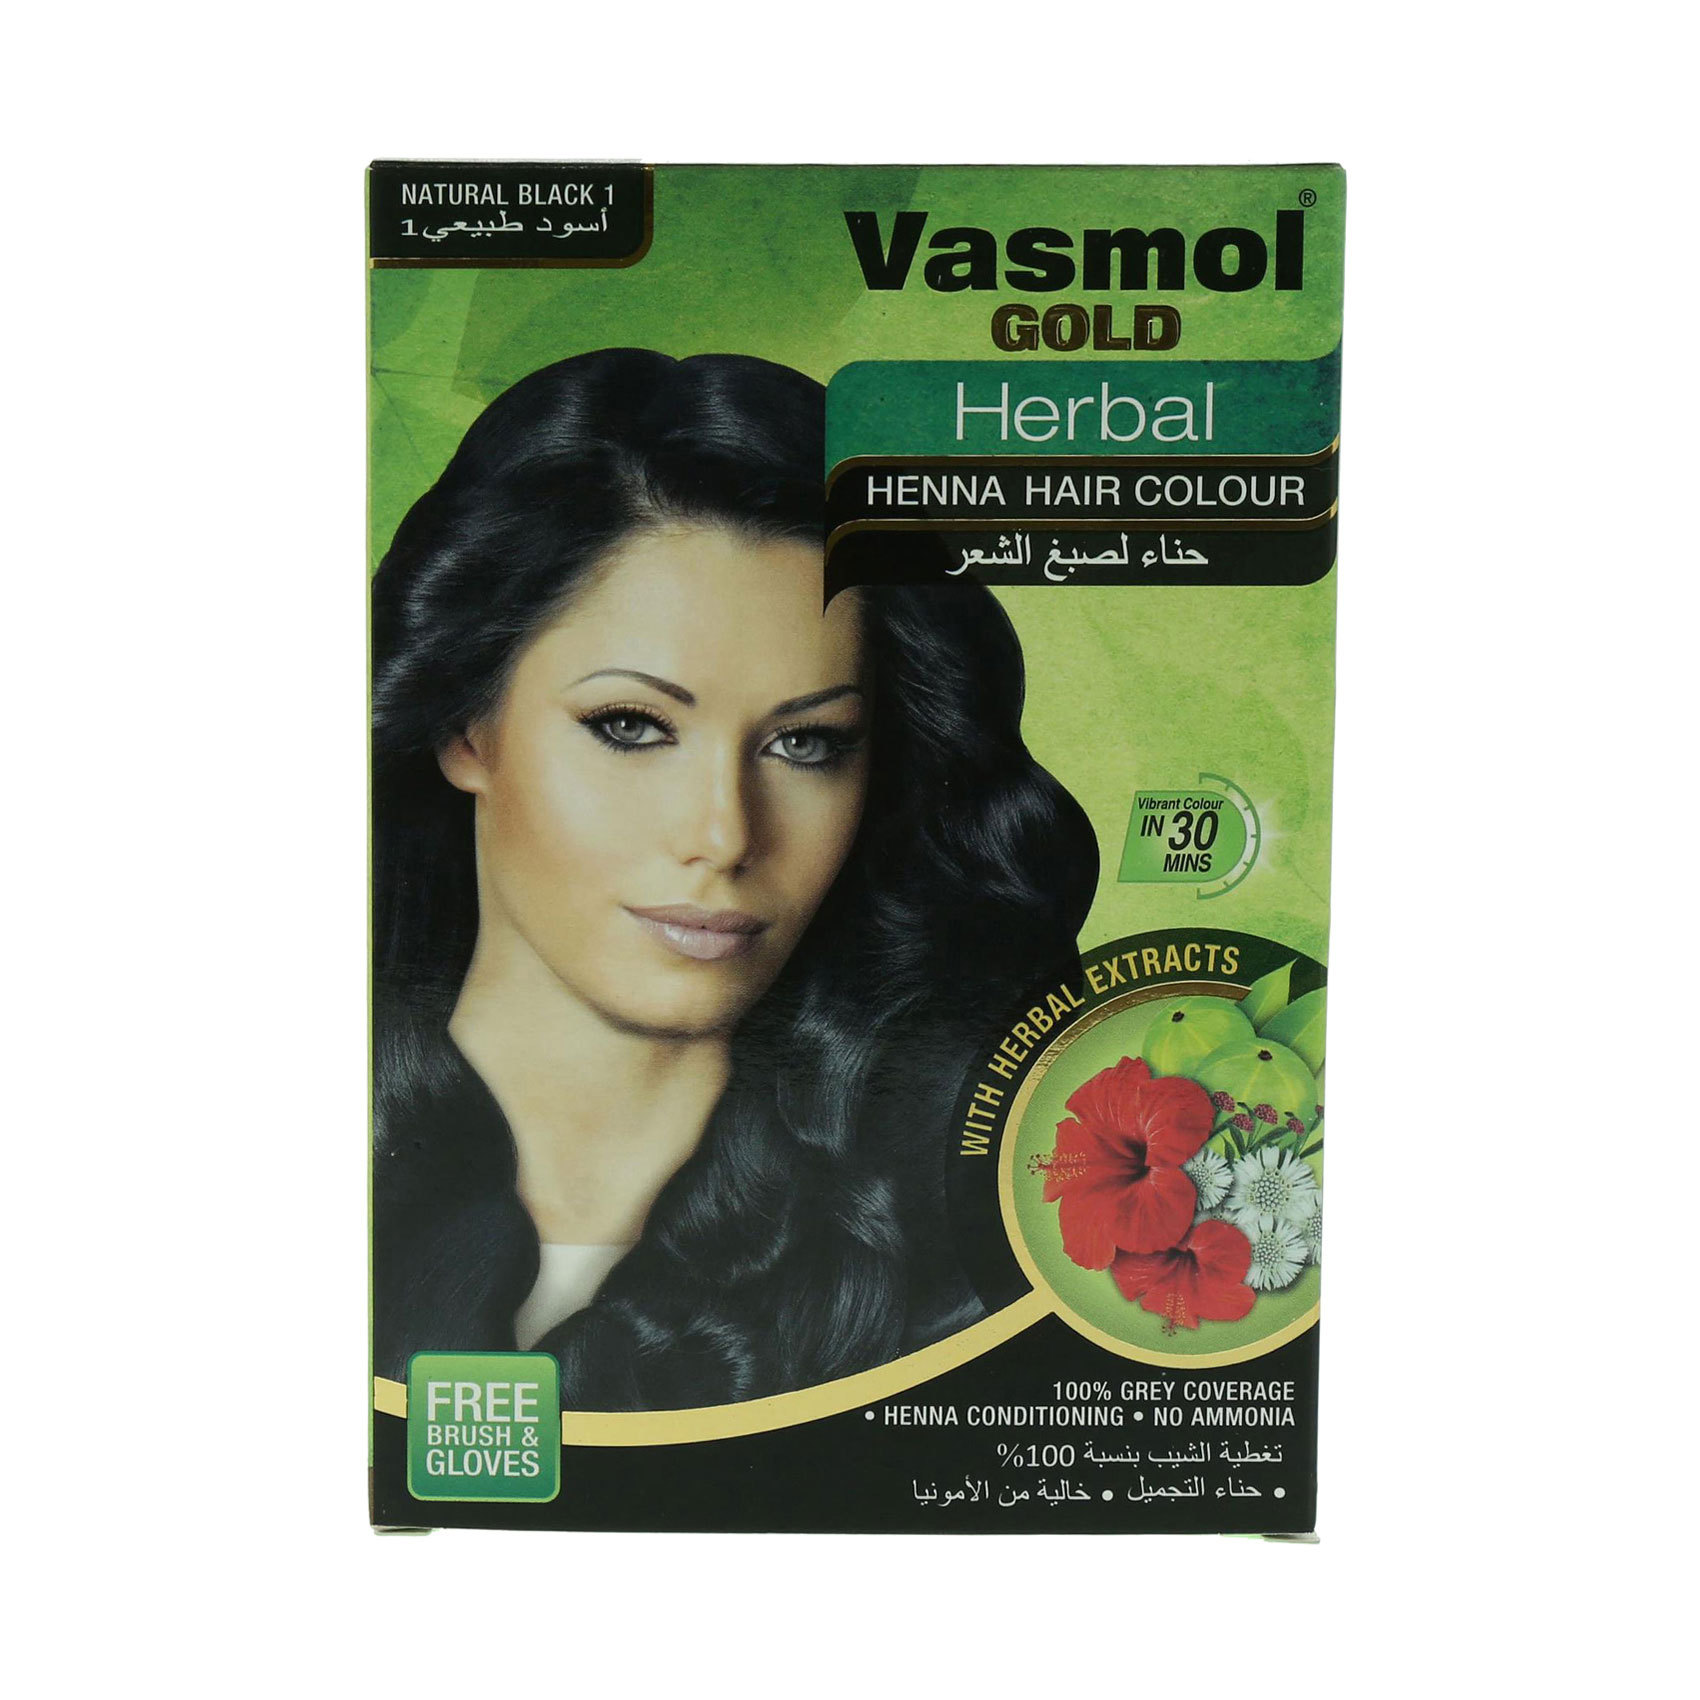 VASMOL GOLD HERBAL BLACK HENNA